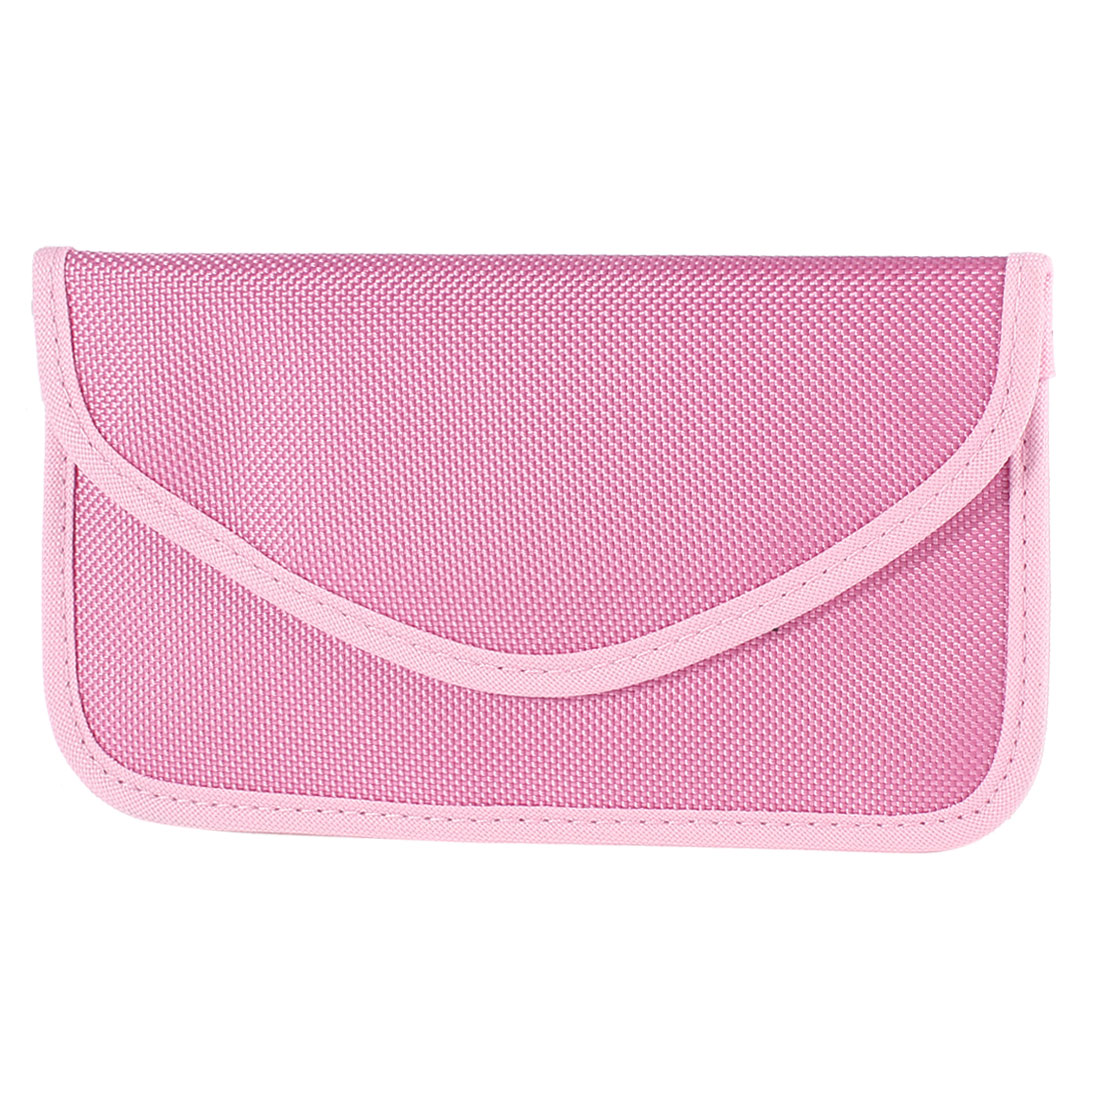 Mobile Phone Textured Cloth Anti-static Pouch Case Bag Pink